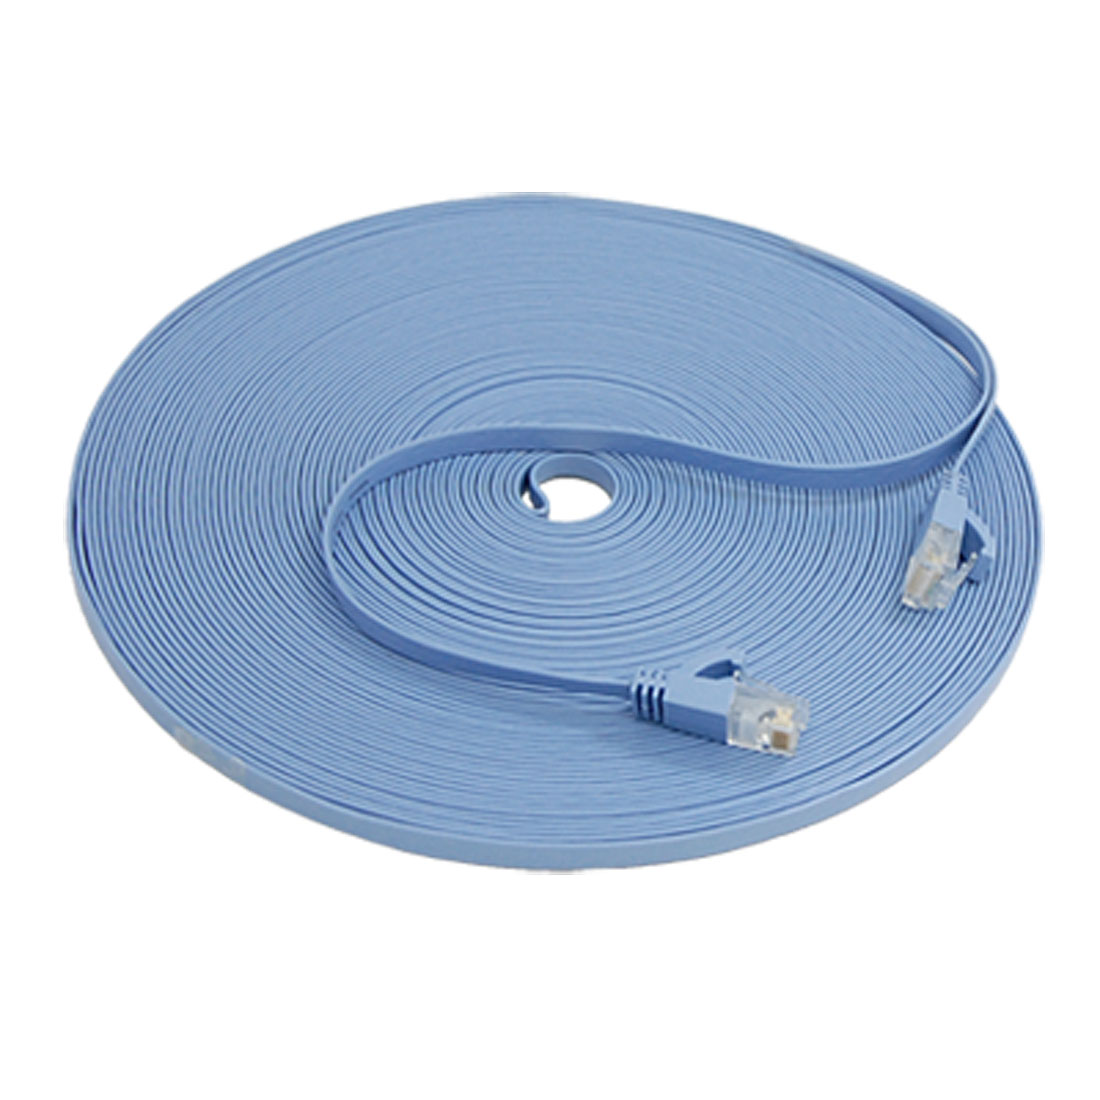 65.6 ft Feet 20M RJ45 CAT6 CAT 6 LAN Network Cable Blue for Ethernet Router Switch